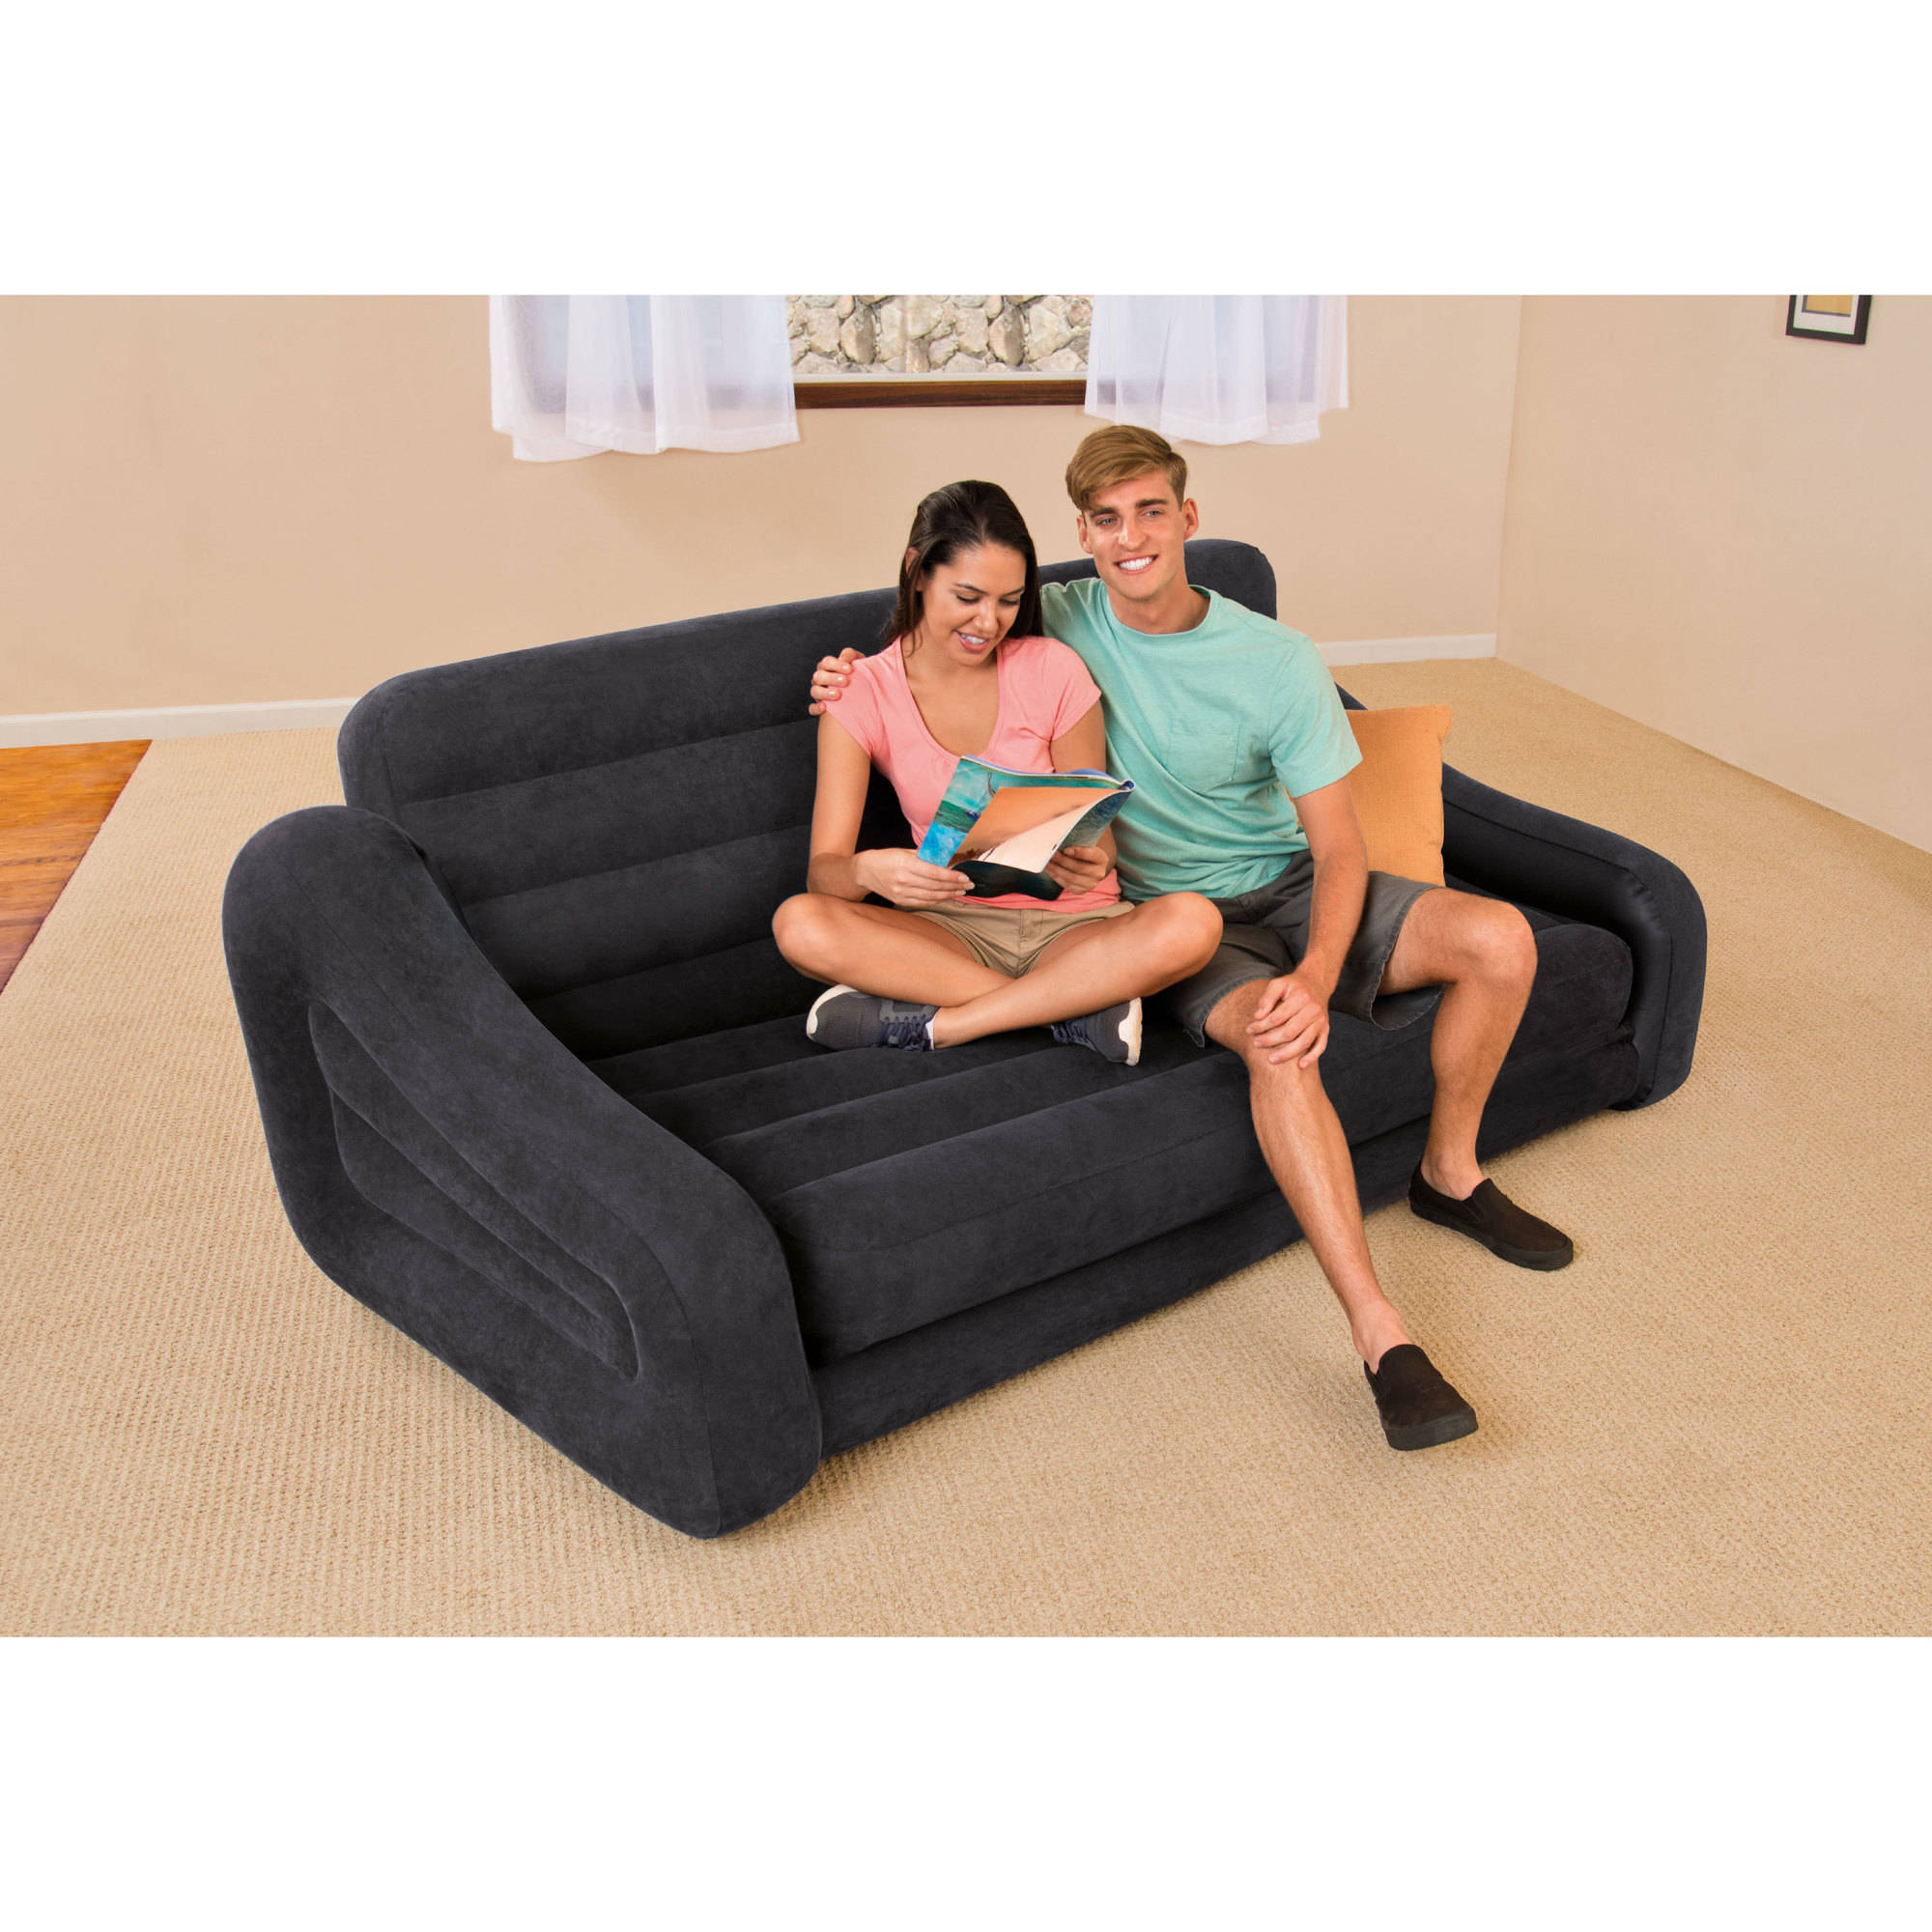 furniture bianca products sq loveseat sofa jennifer sw bed fold out